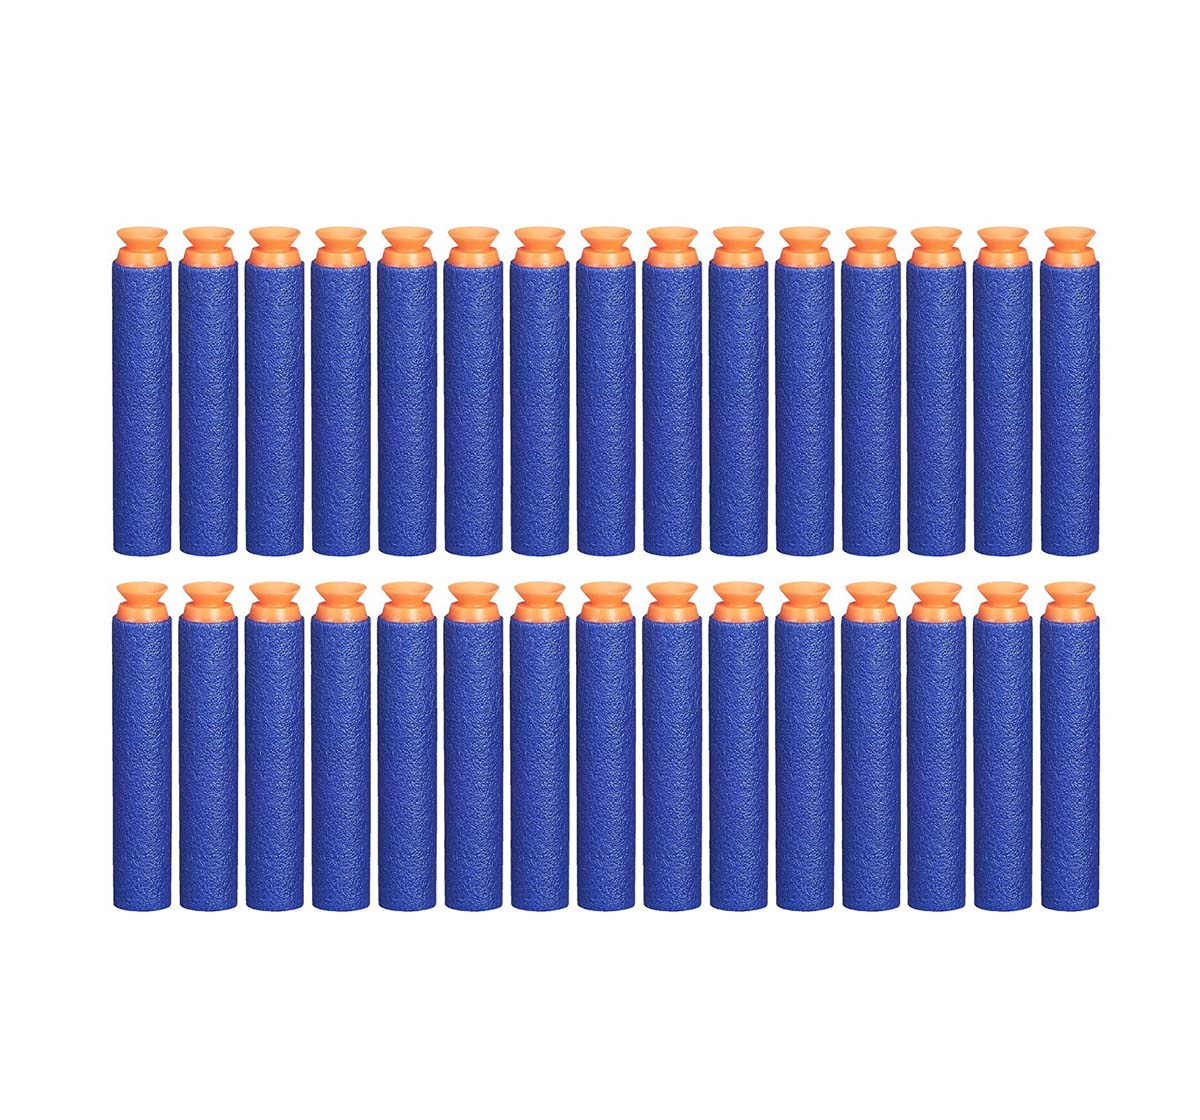 Nerf   Official Blue Nerf Elite Suction Darts 30-Pack Refill For Nerf Elite Blasters - Target Games for Kids age 8Y+